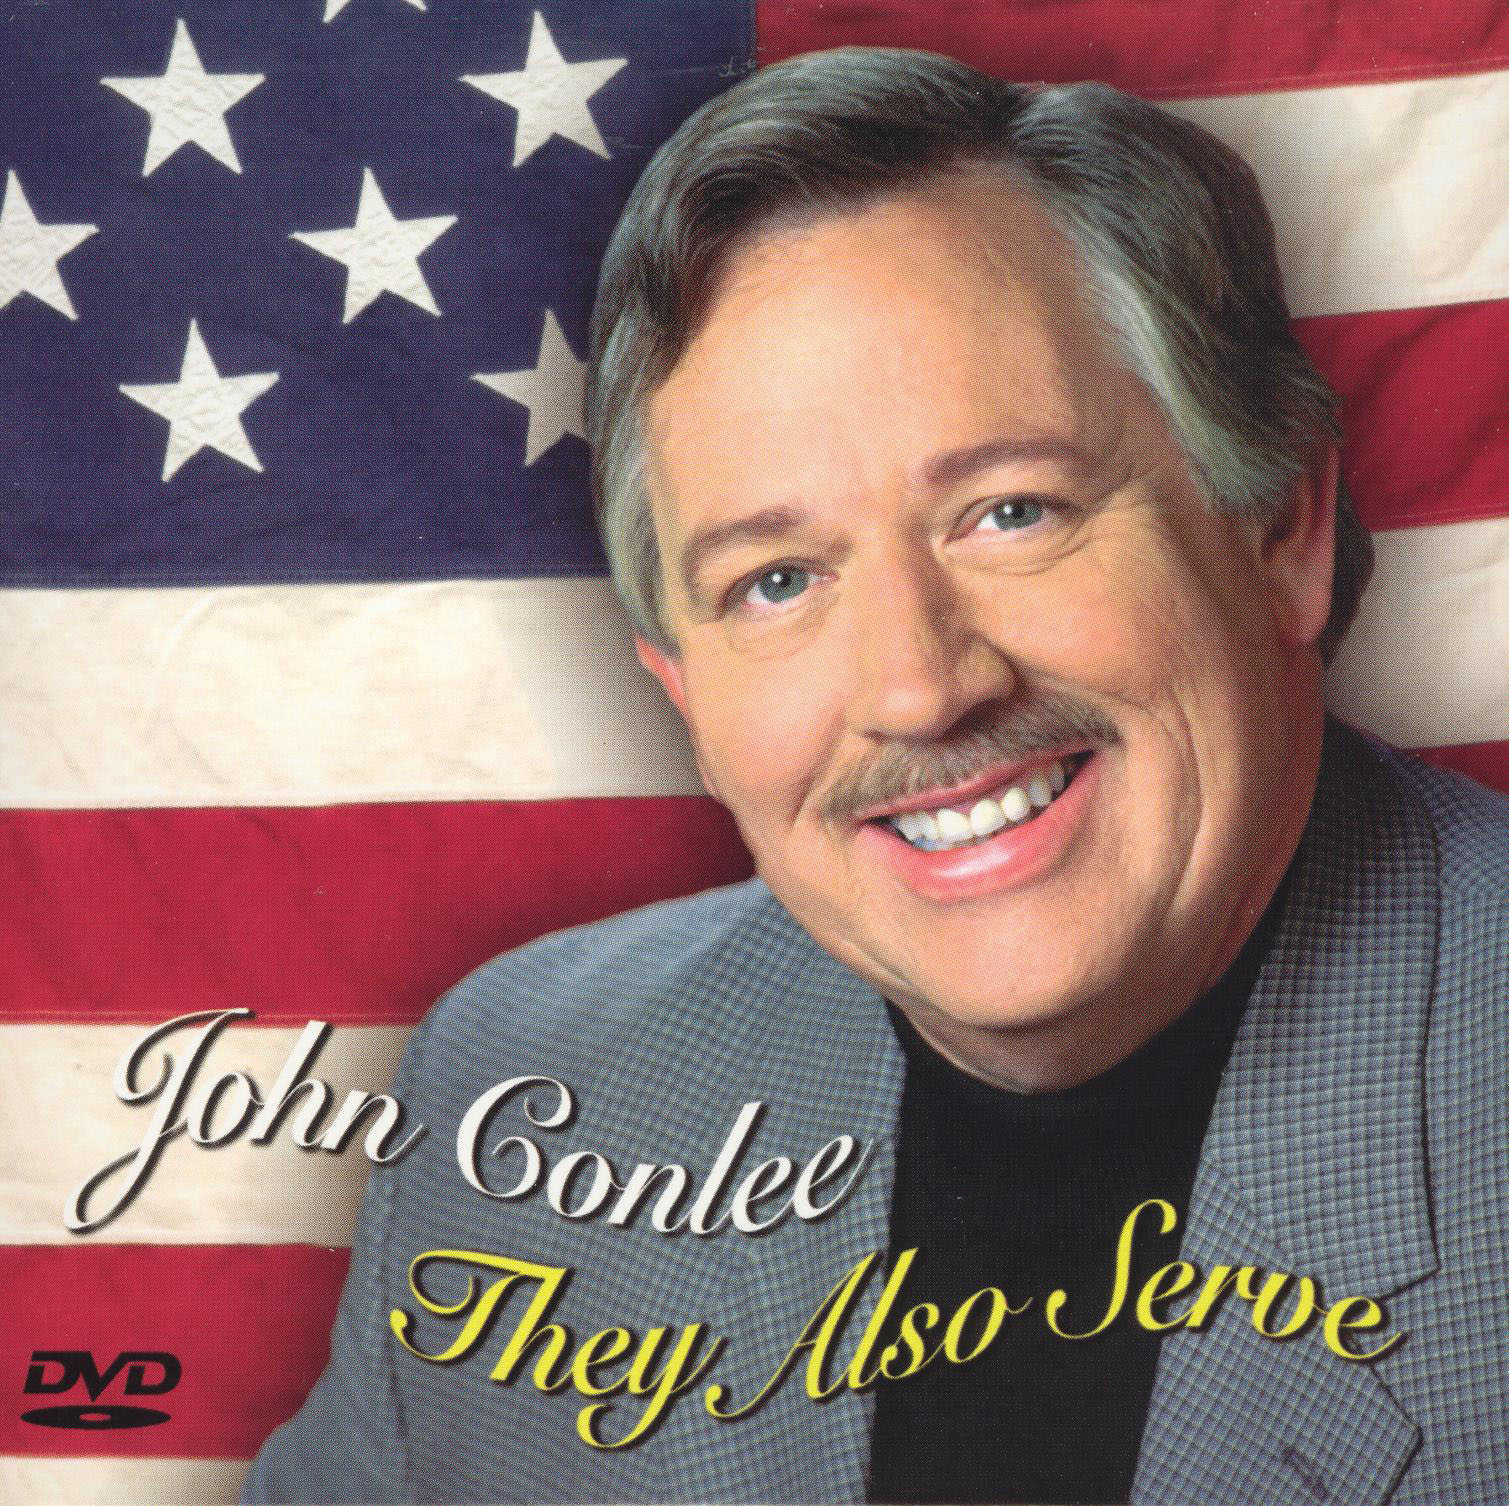 John Conlee: They Also Serve